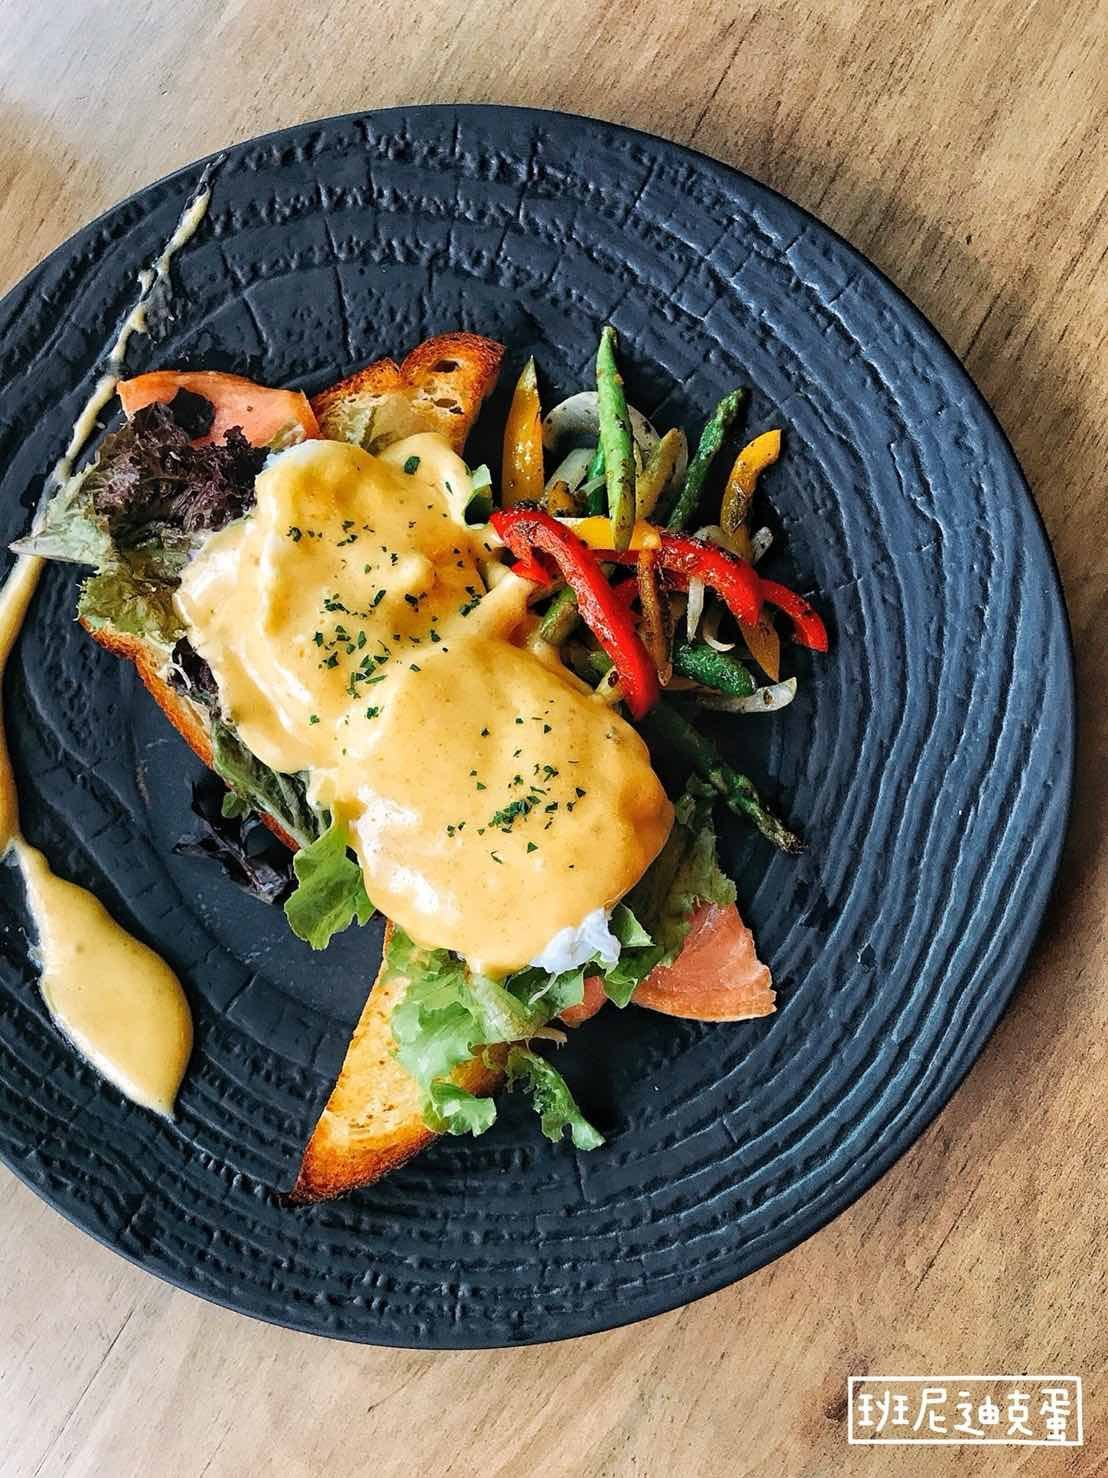 //cdn.funnow.com.tw/images/oblog/eggbenedict_0a2818.jpg